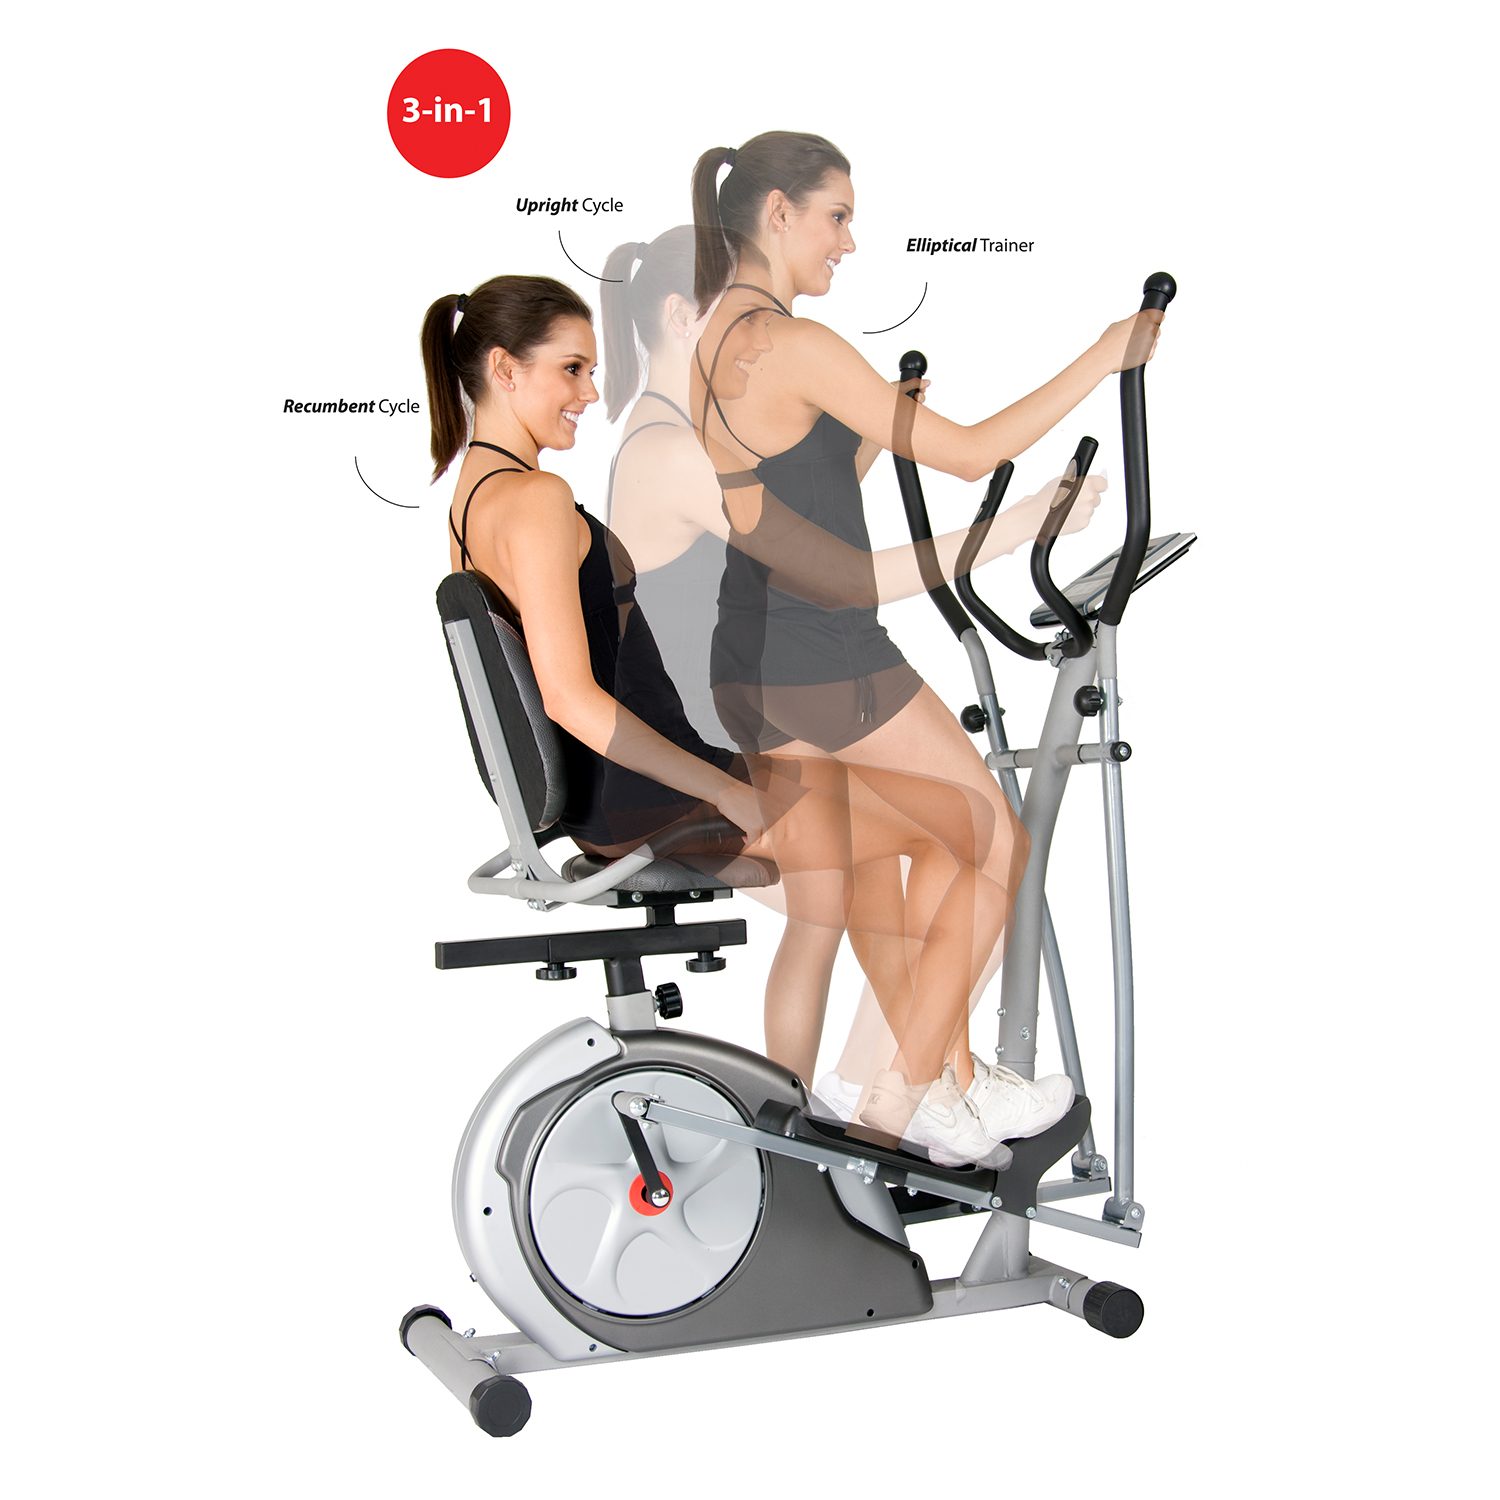 Body Rider BRT3980 Elliptical Machine Trainer 3-in-1 Trainer Workout Machine